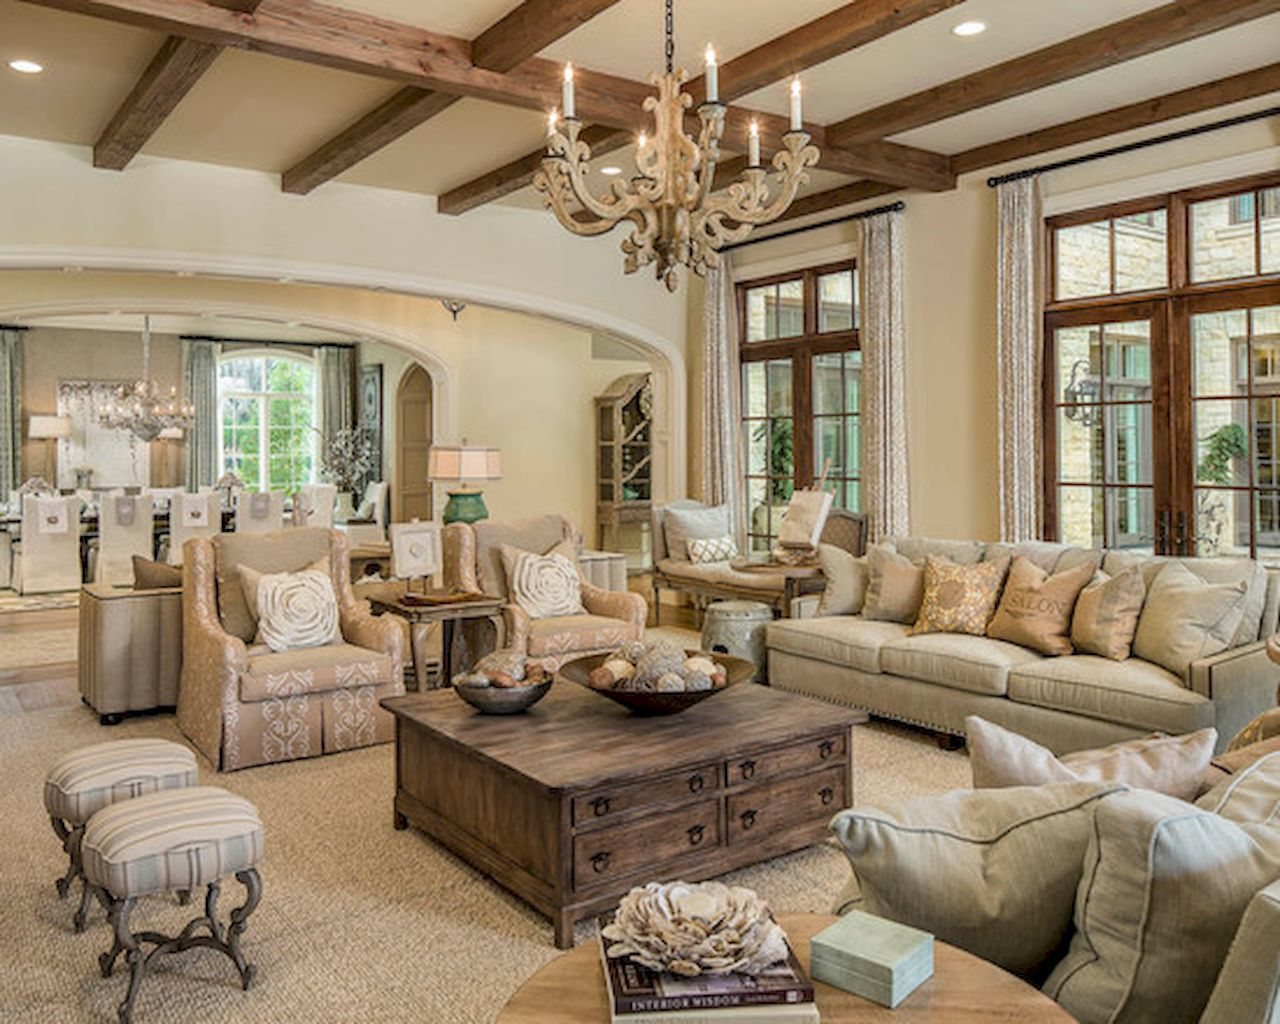 Gorgeous French Country Living Room Decor Ideas (21